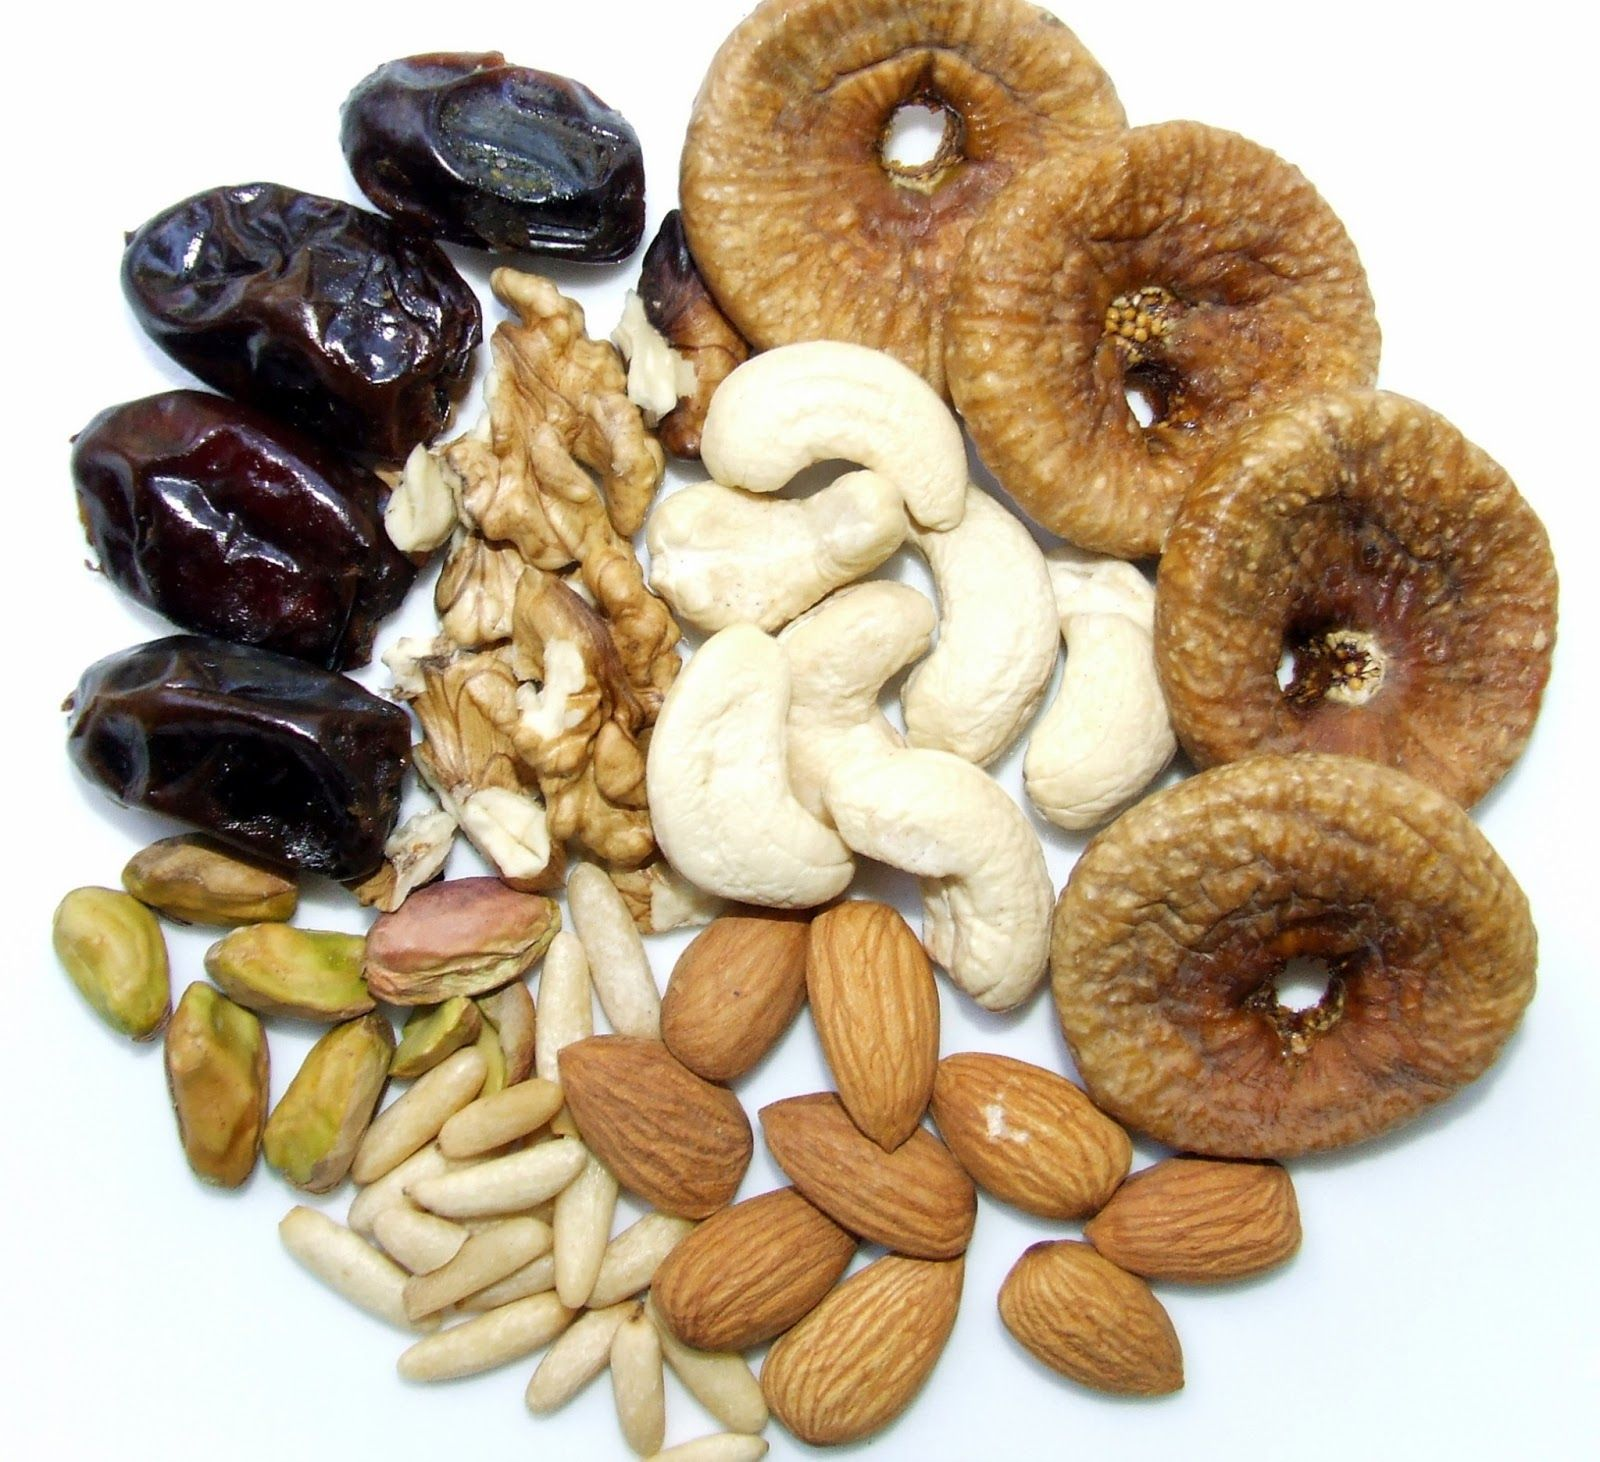 dry fruit play u0027s an important role in indian festival get the